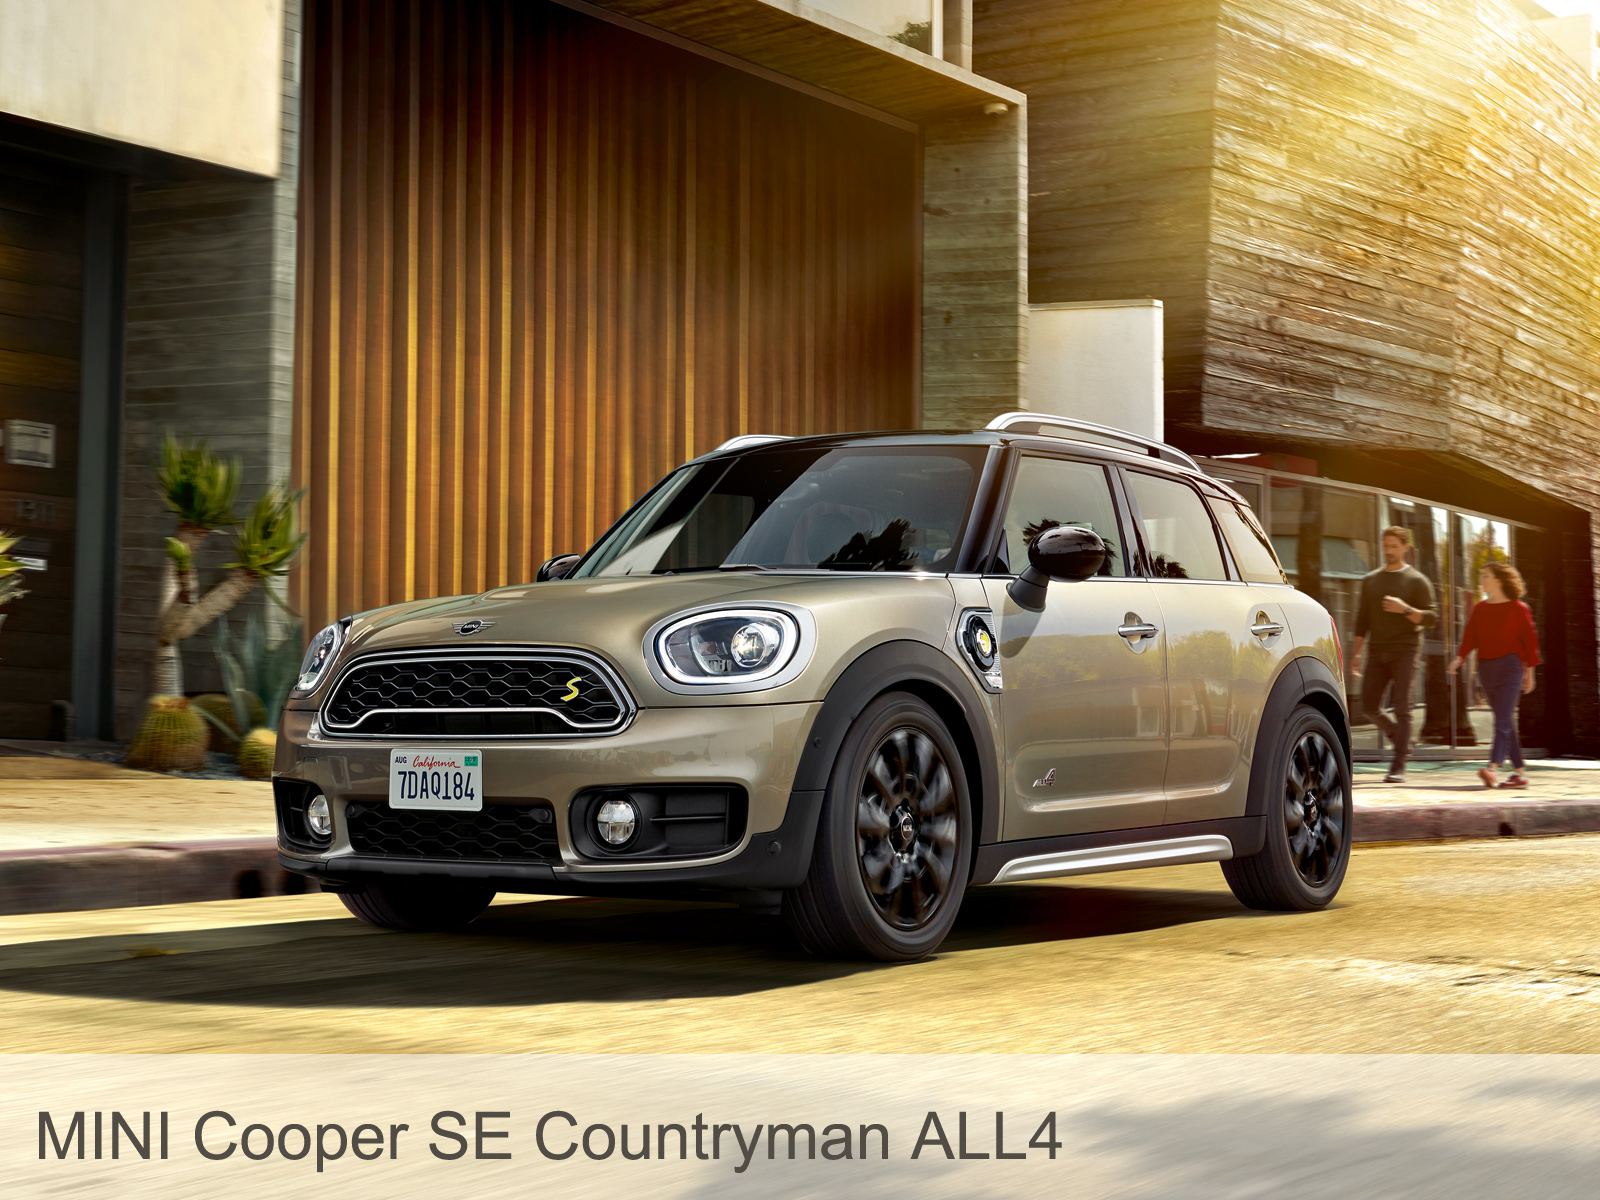 MINI-Cooper-SE-Countryman-ALL4